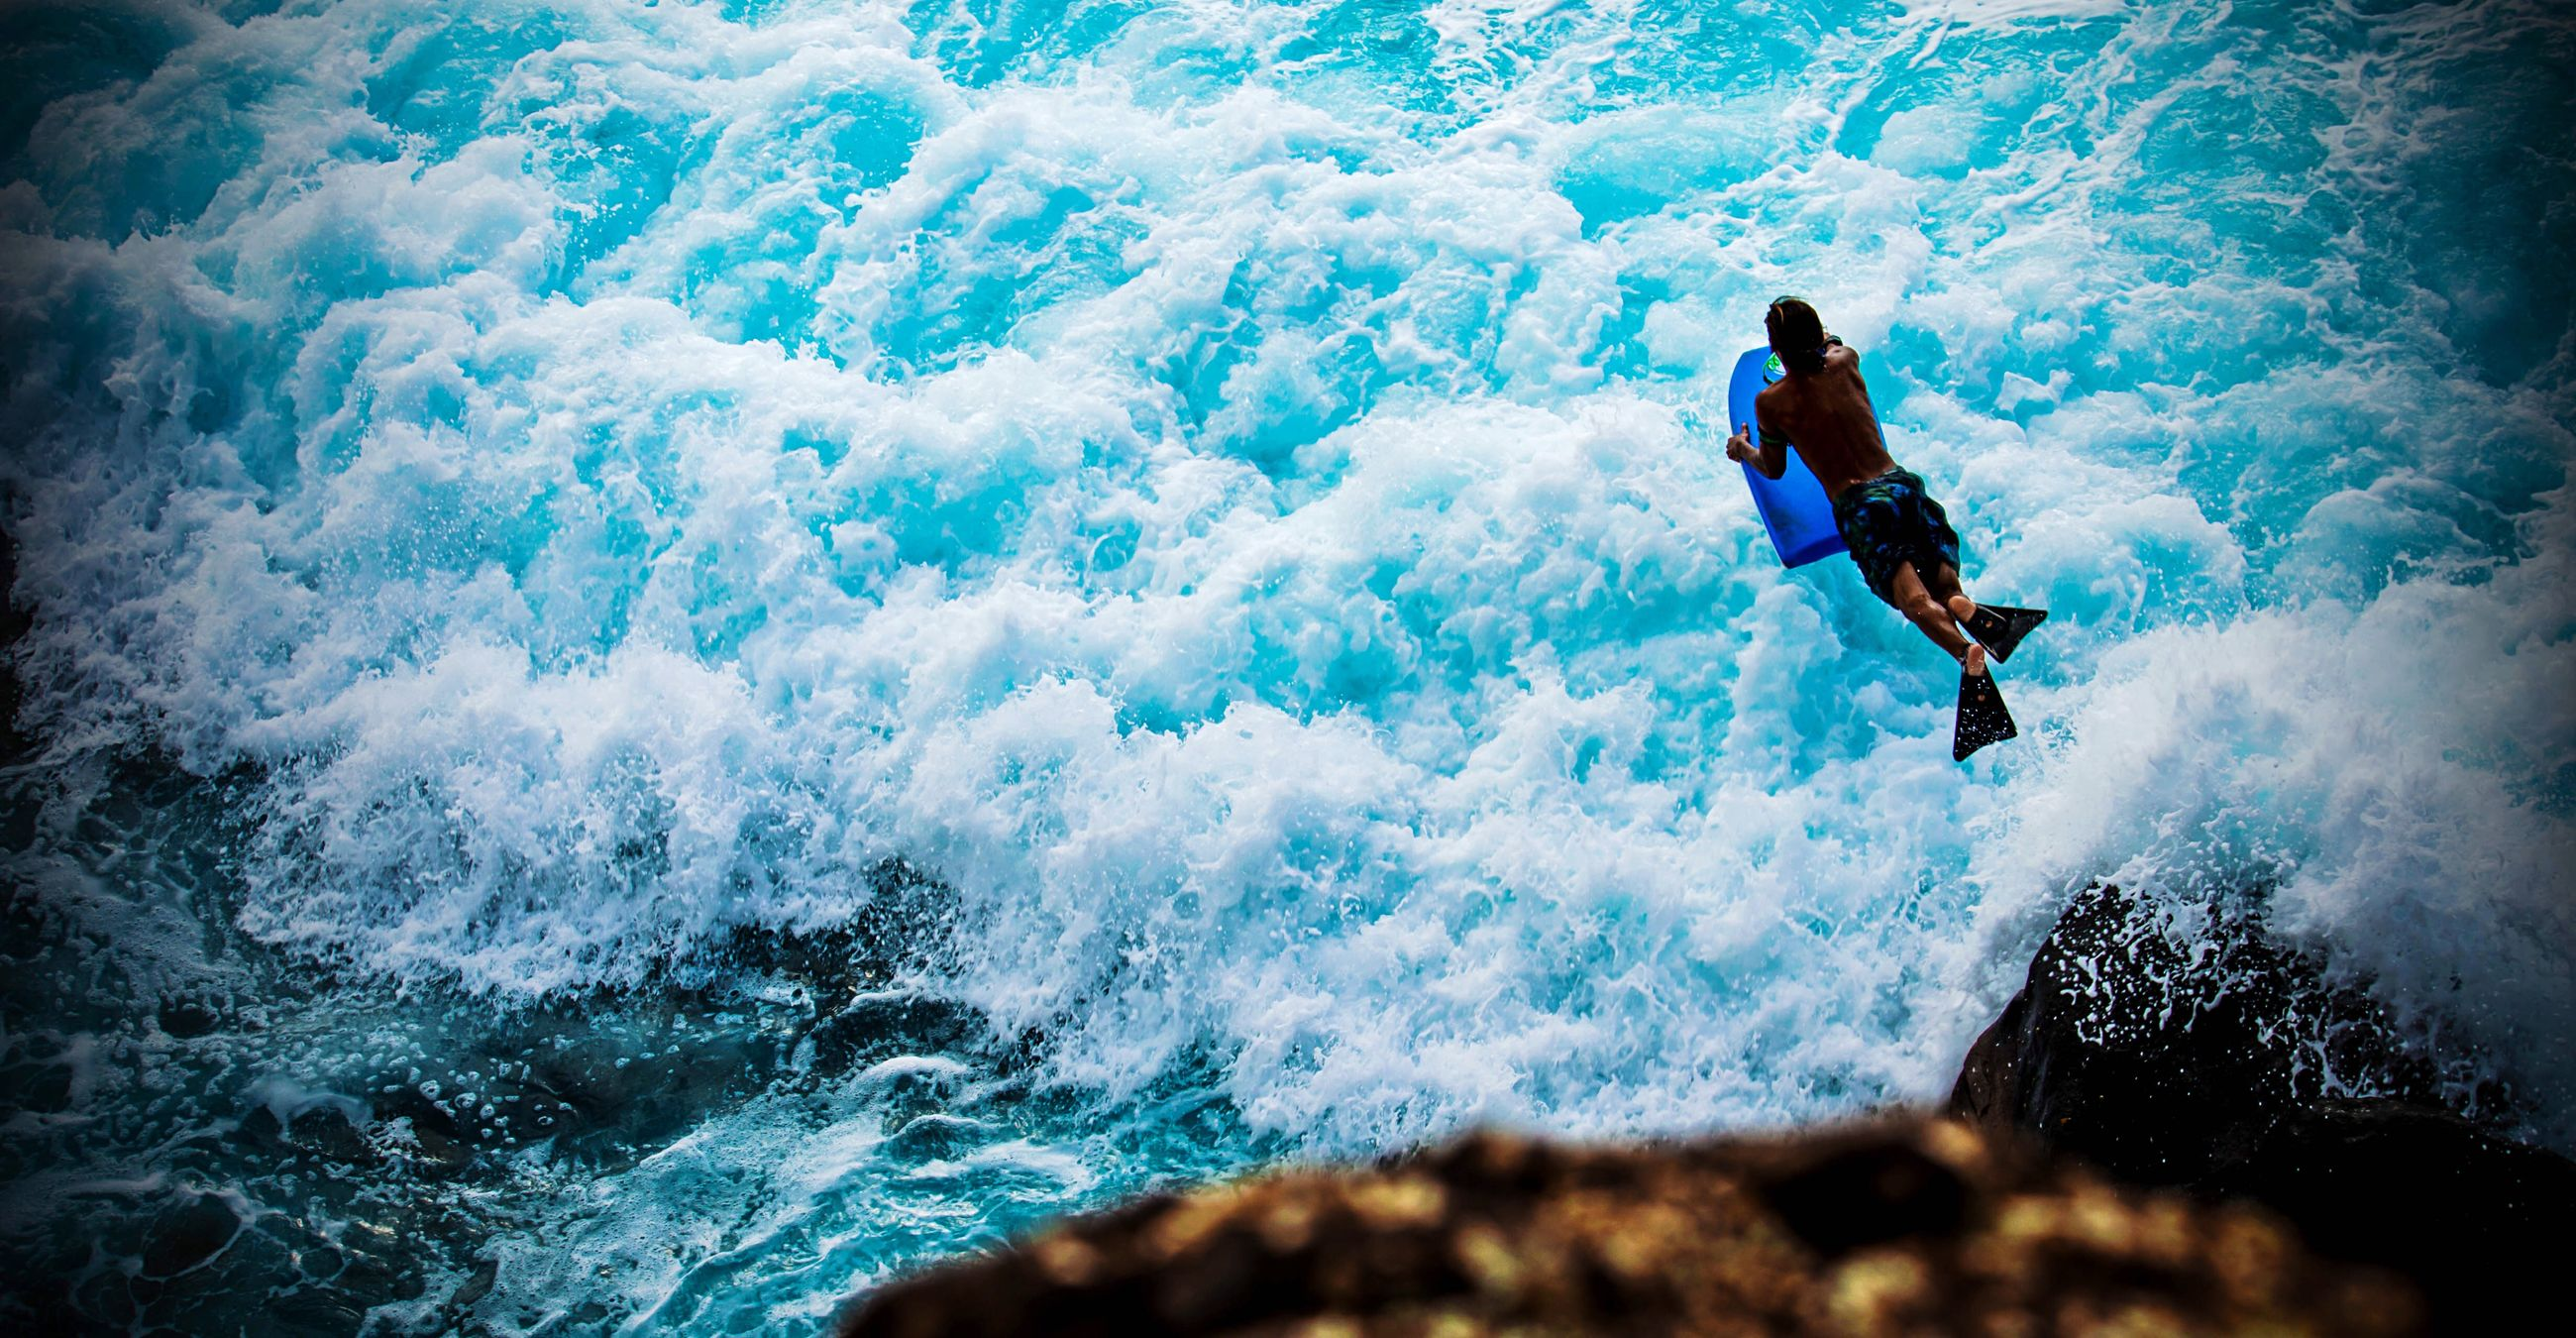 lifestyles, leisure activity, men, water, adventure, extreme sports, sport, enjoyment, vacations, motion, full length, skill, recreational pursuit, activity, fun, water sport, surfing